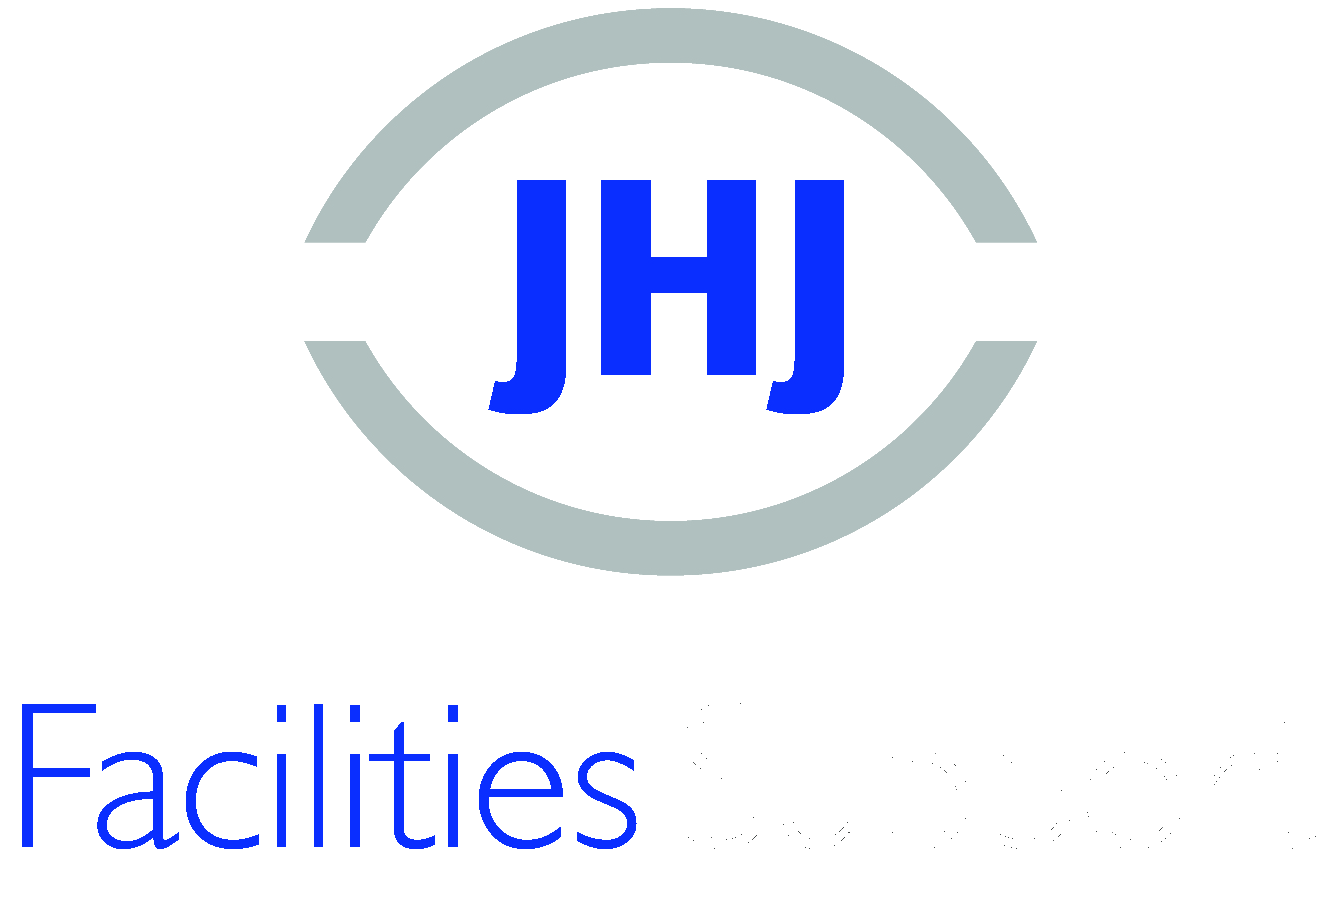 JHJ Facilities Support